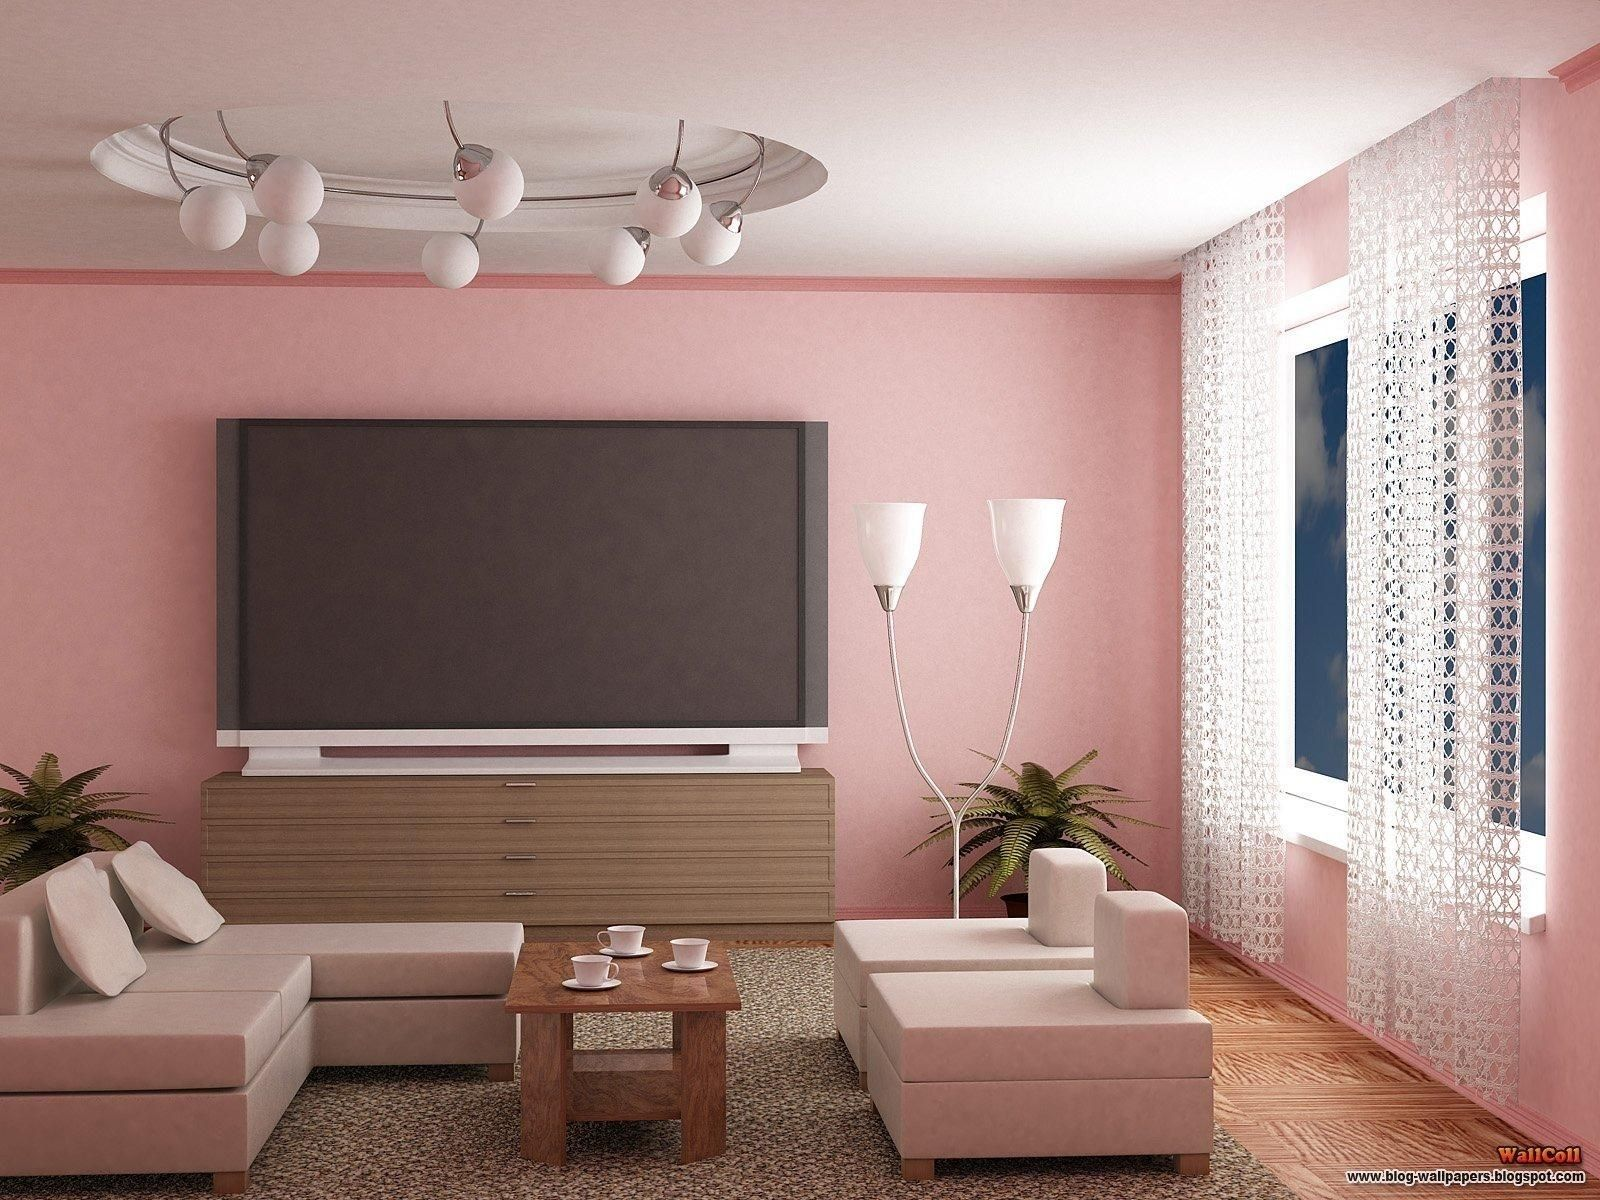 Cute Living Room Paint Idea In Chic Pinky Theme With Pink Wall Living Room Wall Color Room Wall Colors Living Room Colors #pretty #living #room #colors